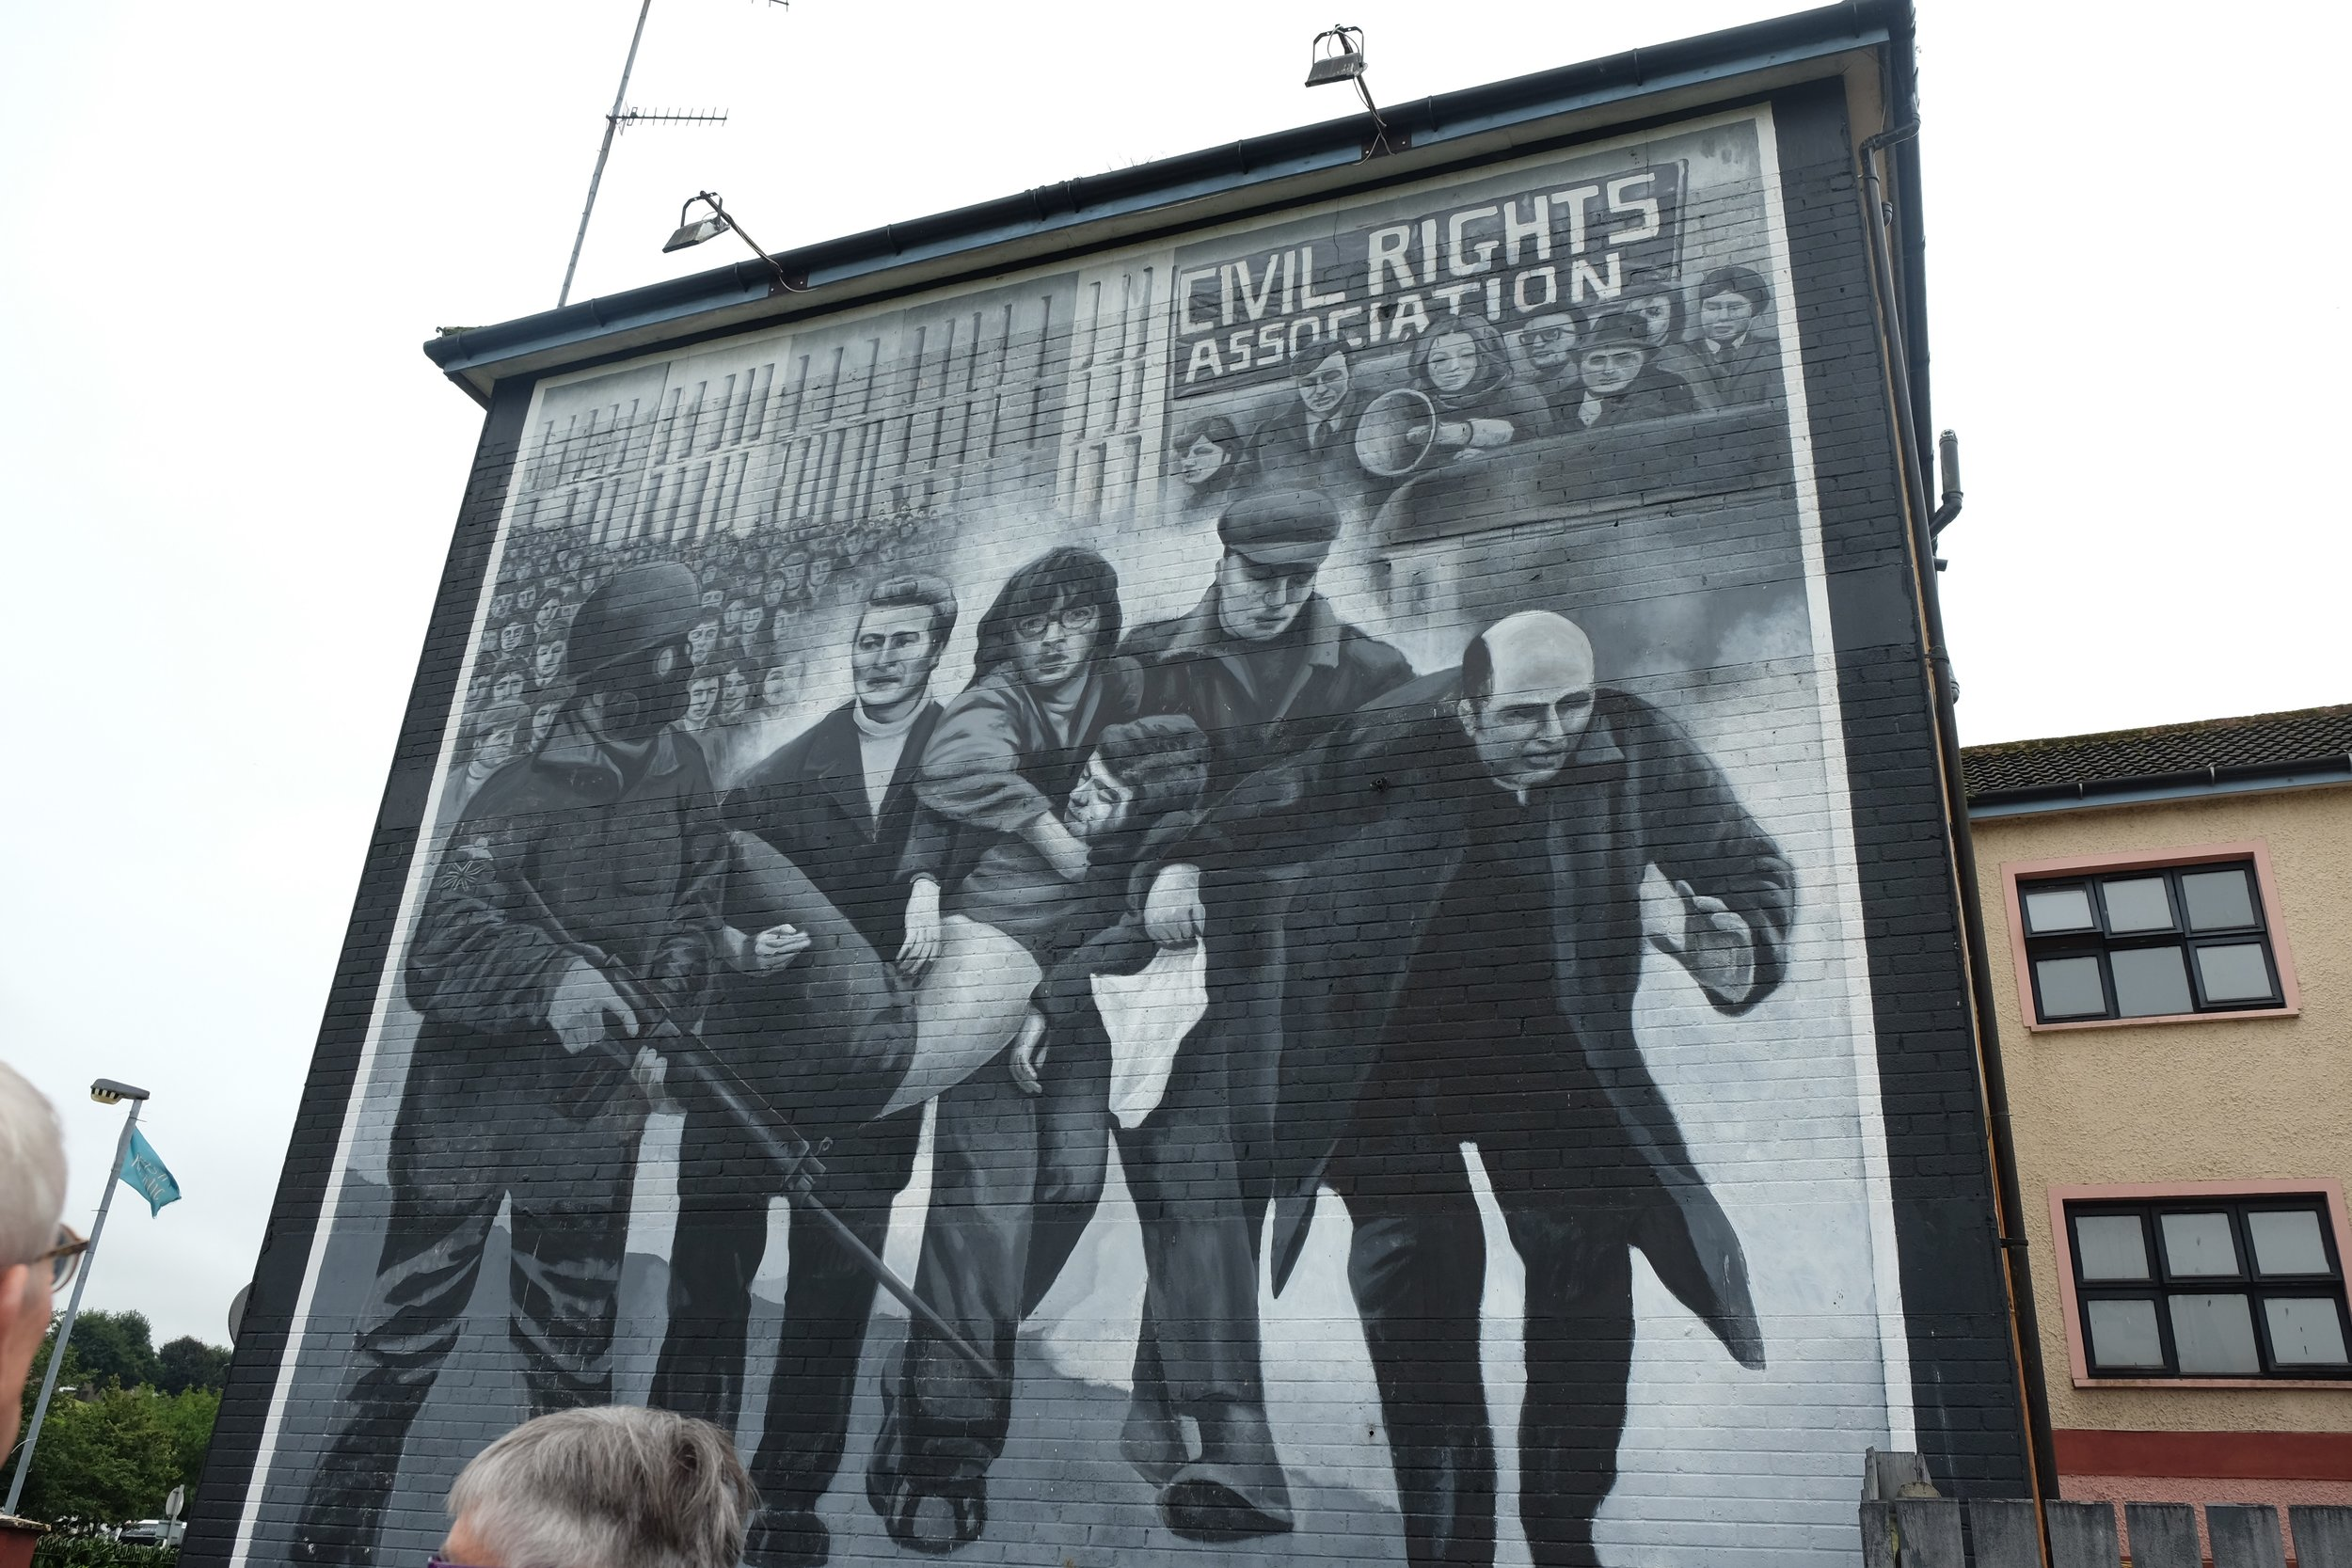 """Bloody Sunday Mural, unveiled on January 30, 1999 during the 25th anniversary of the events that occurred on that day. British soldiers shot into a crowd of unarmed civilians and 14 people died. What you see is a local Catholic priest (later identified as Bishop Daly) carrying the body of Jack Duddy from the scene. Not pictured is the bottom portion of the mural, which depicts a bloodstained """"civil rights"""" banner, used to cover one of the bodies."""